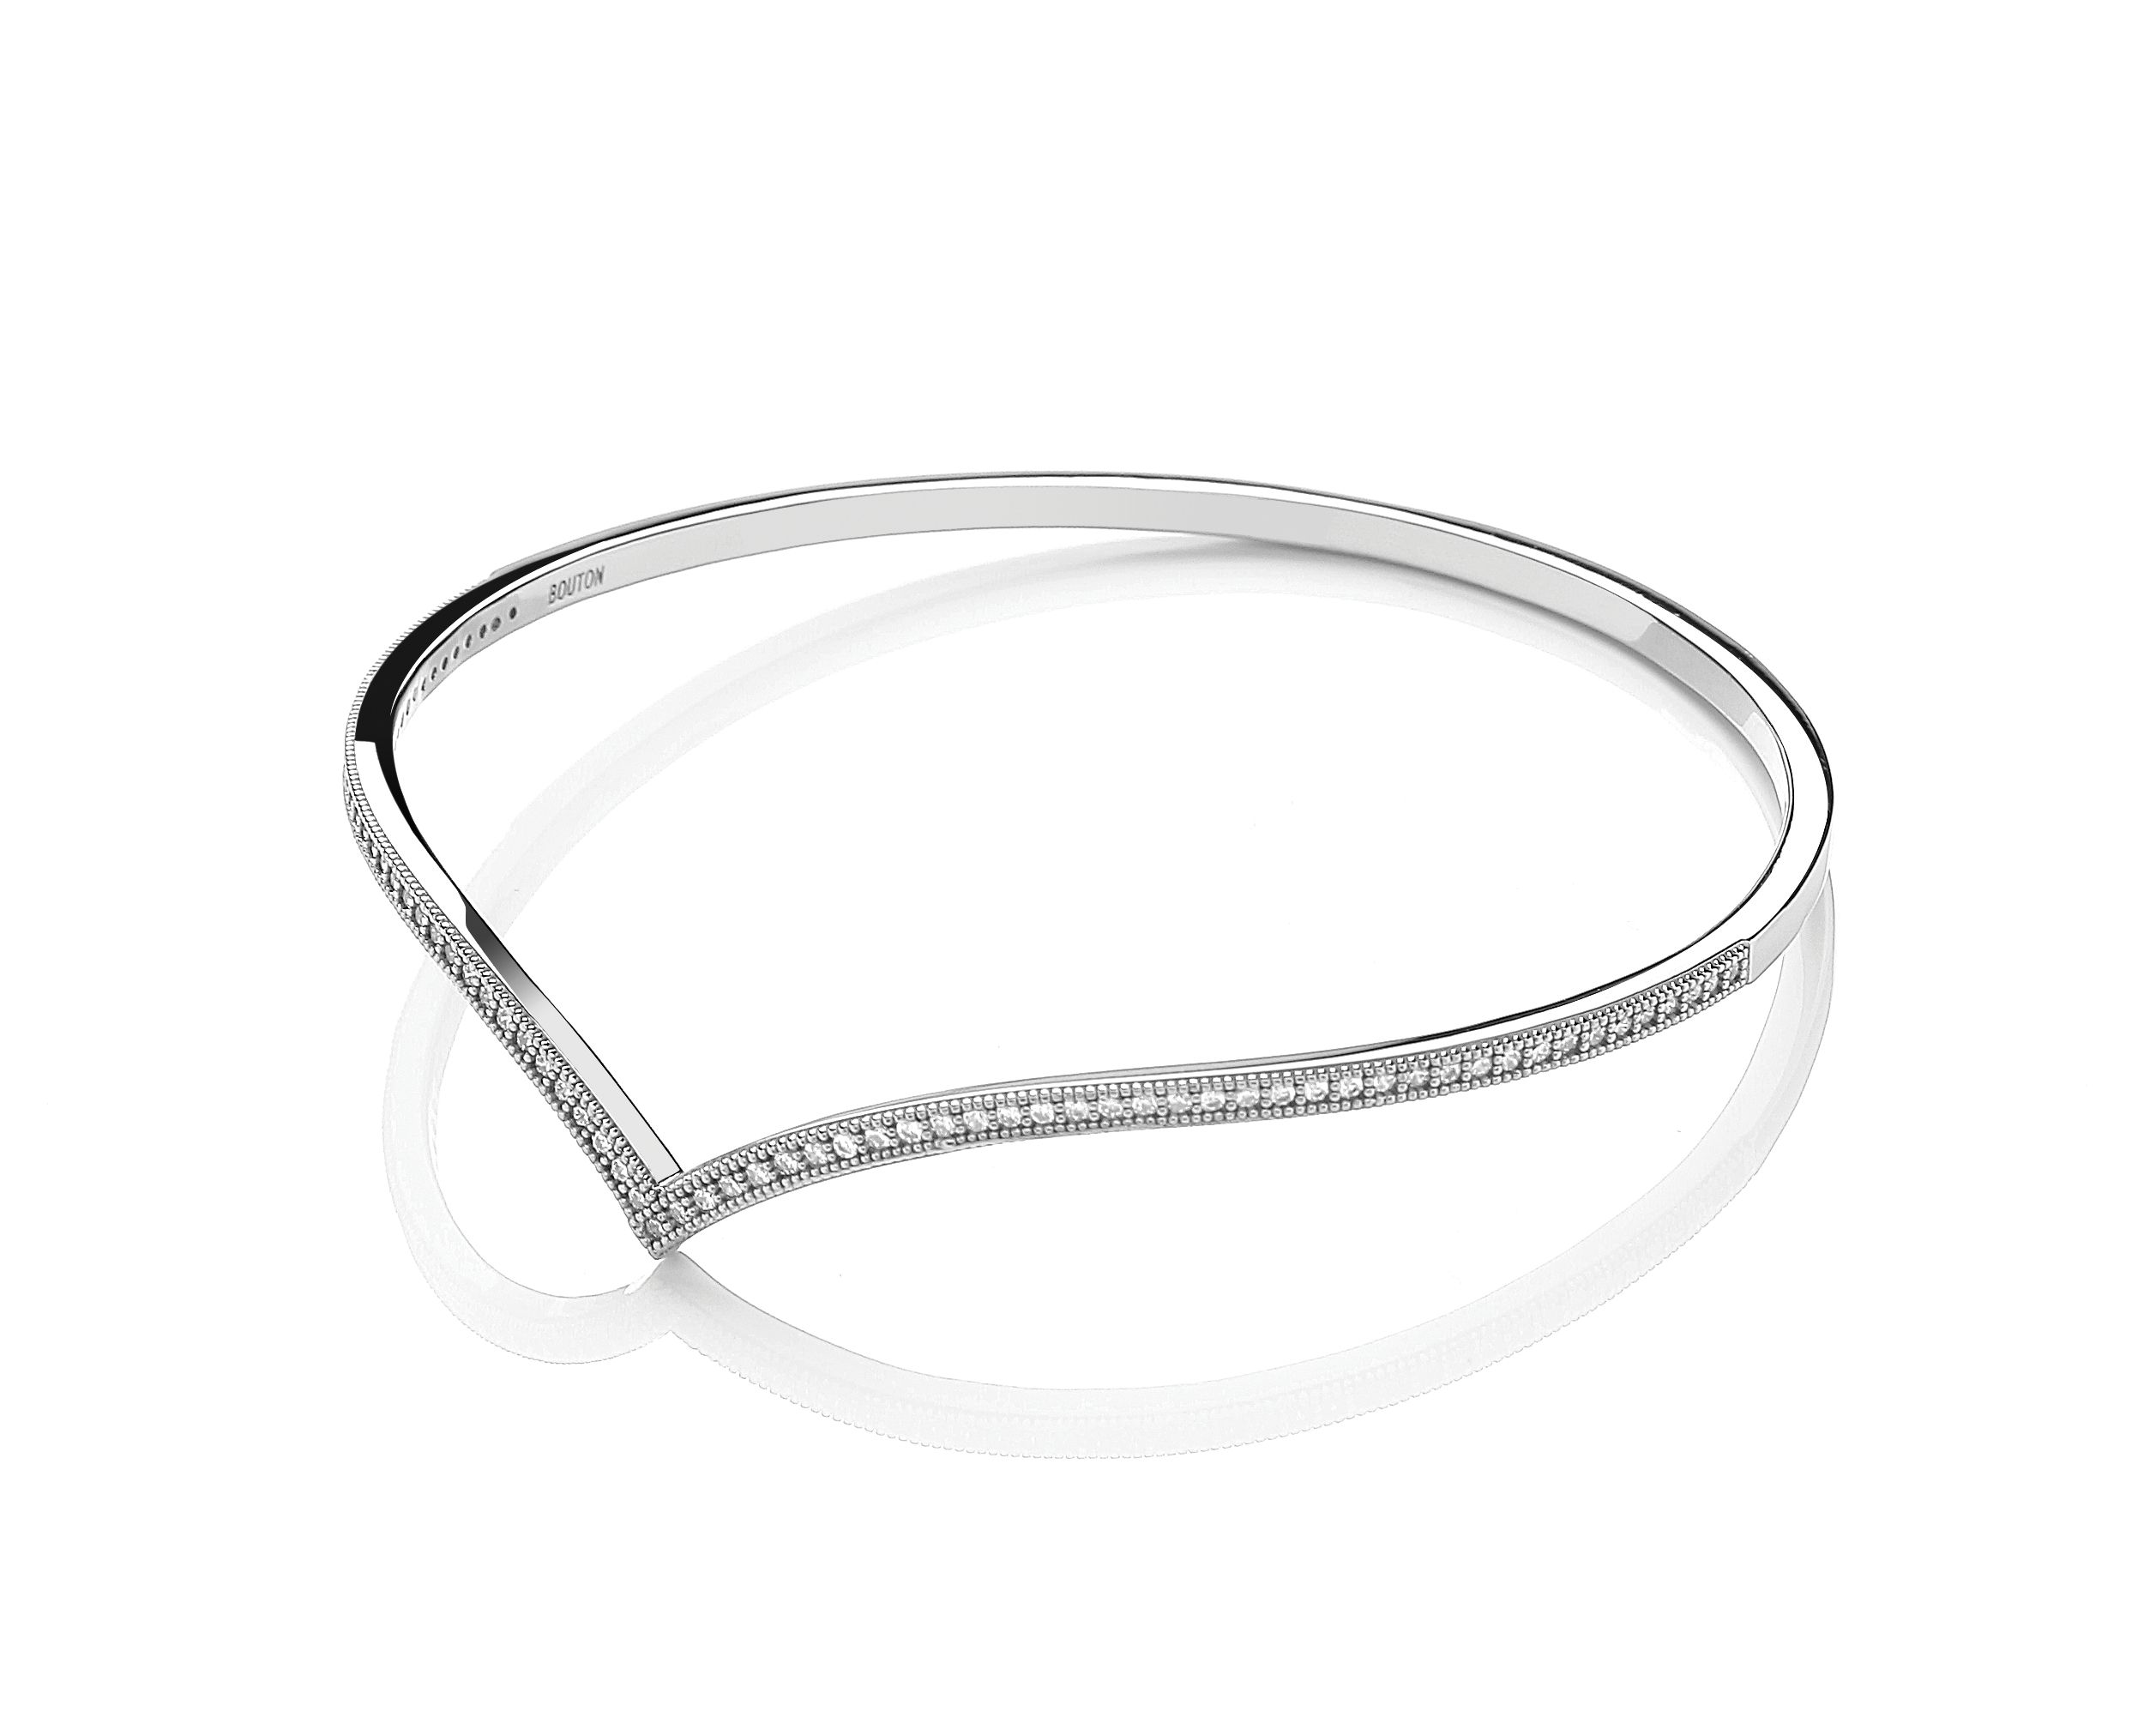 Rhodium wishbone bangle